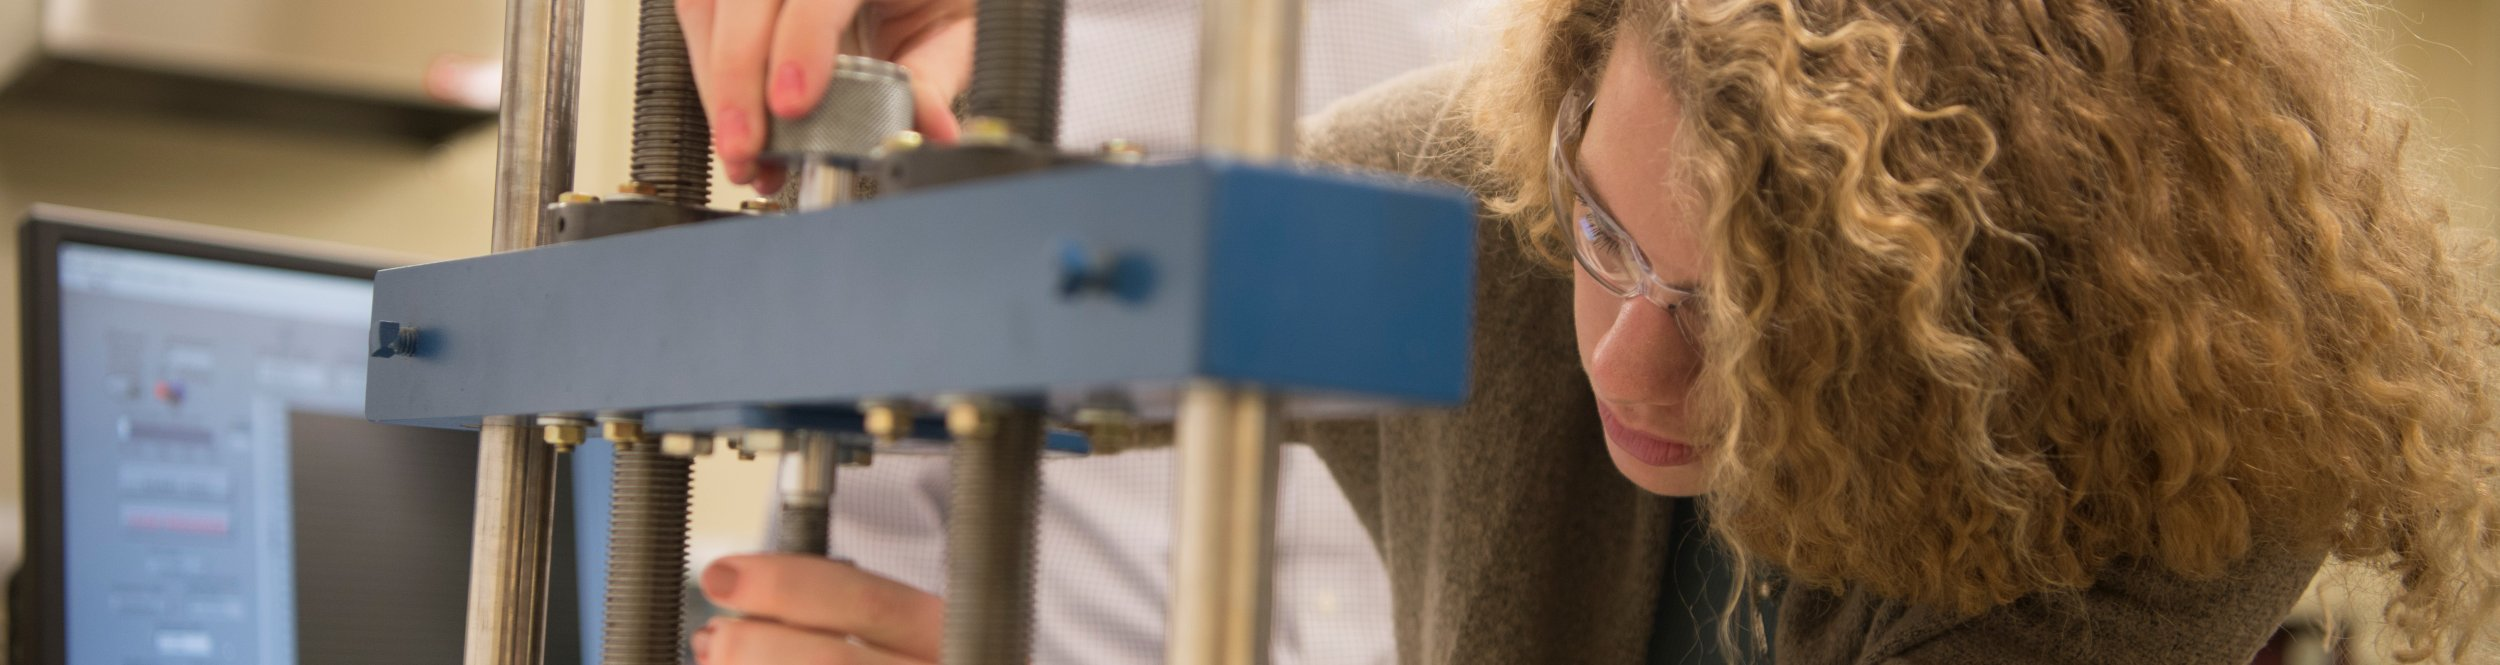 A female student inspects an engineering device.